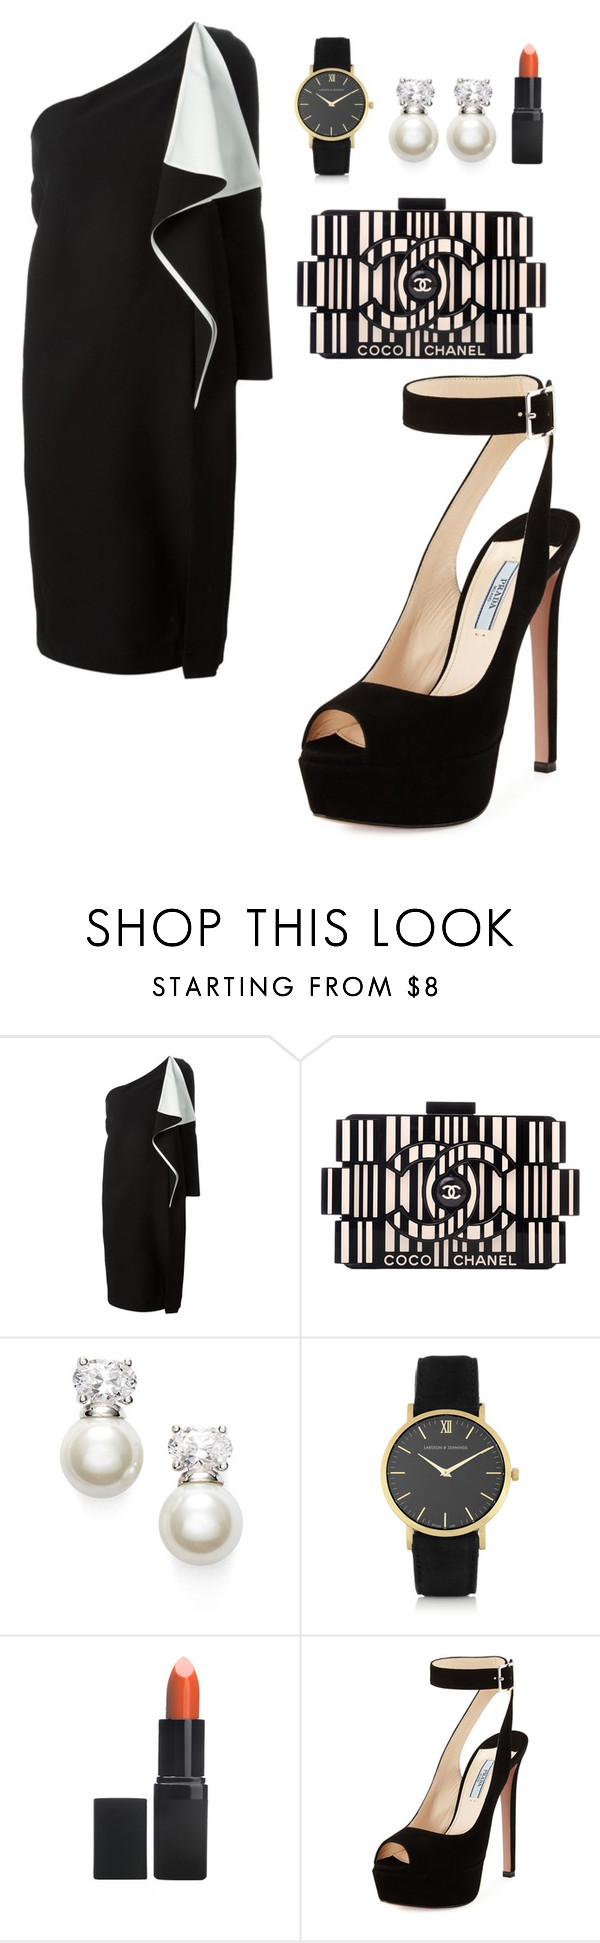 """""""My First Polyvore Outfit"""" by yassyyess ❤ liked on Polyvore featuring Chloé, Chanel, Judith Jack, Larsson & Jennings, Barry M and Prada"""